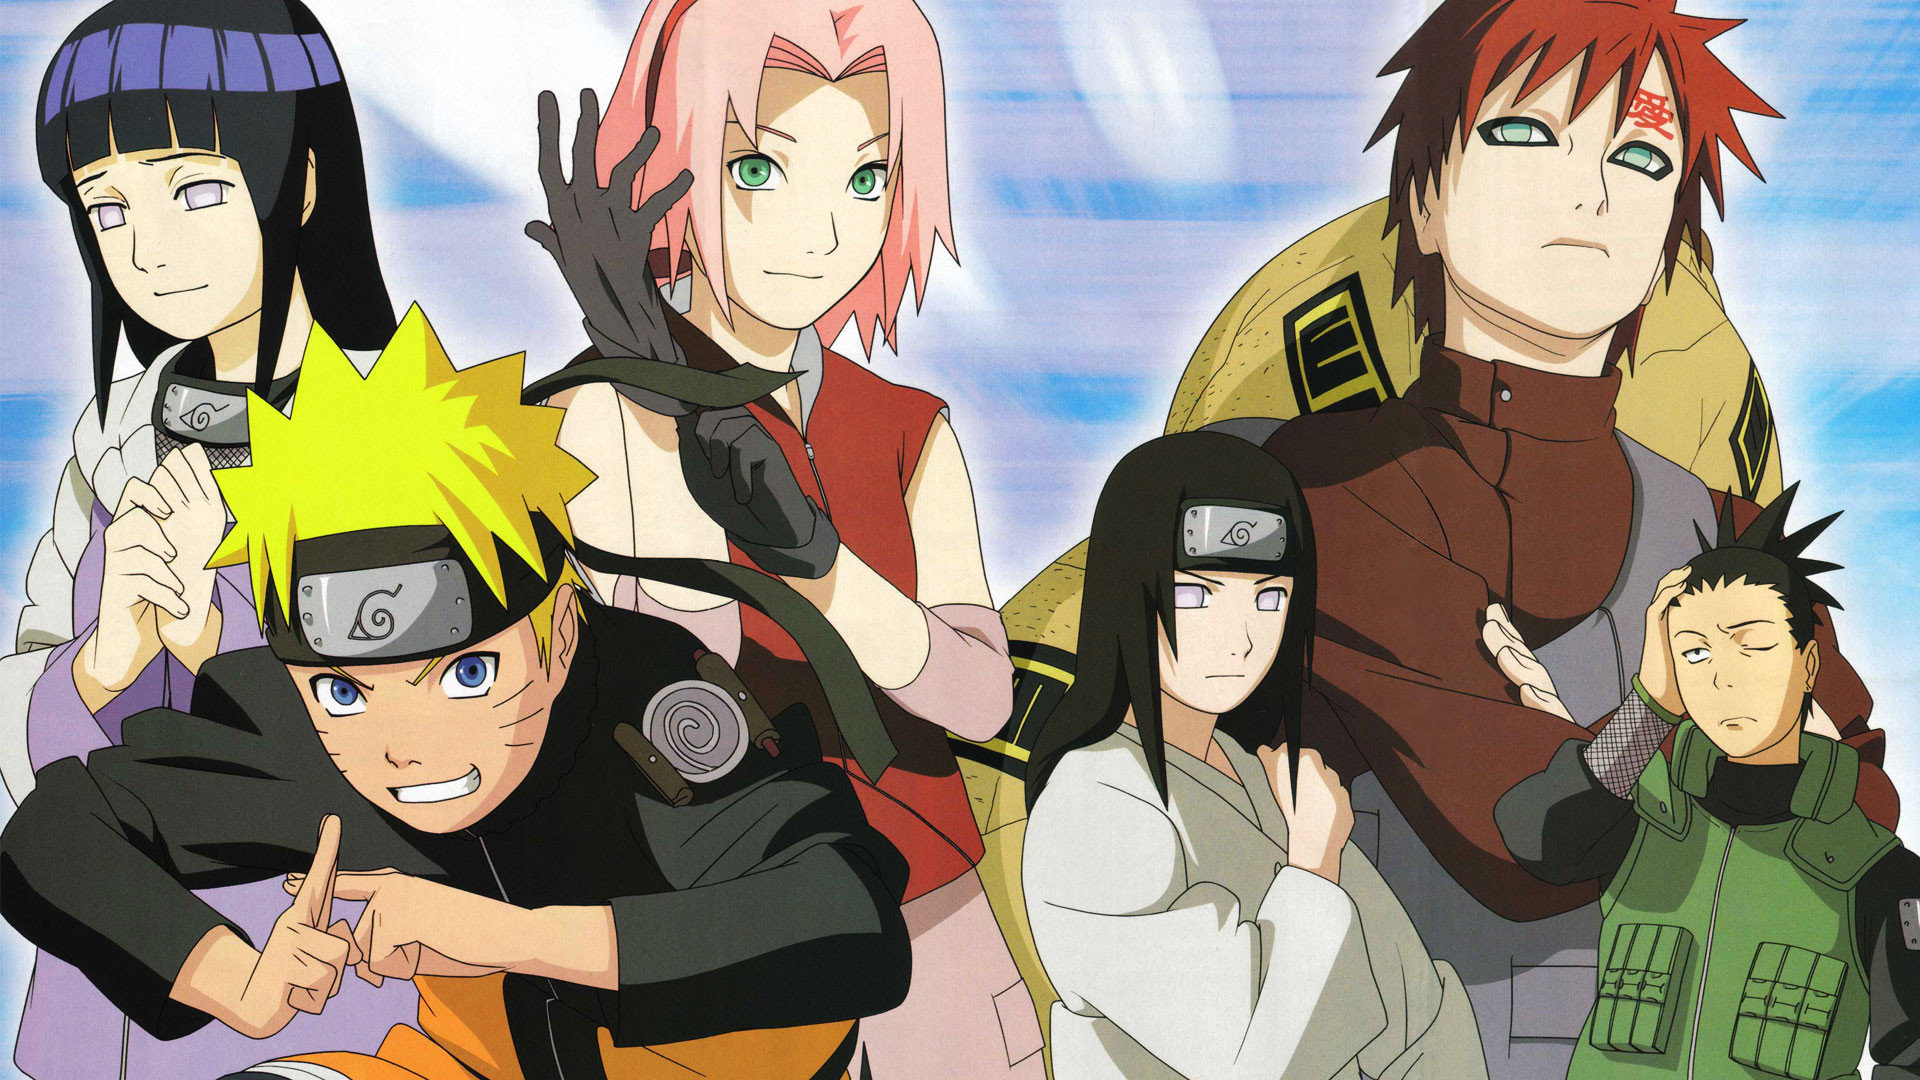 Download 1080p Naruto PC background ID:395272 for free